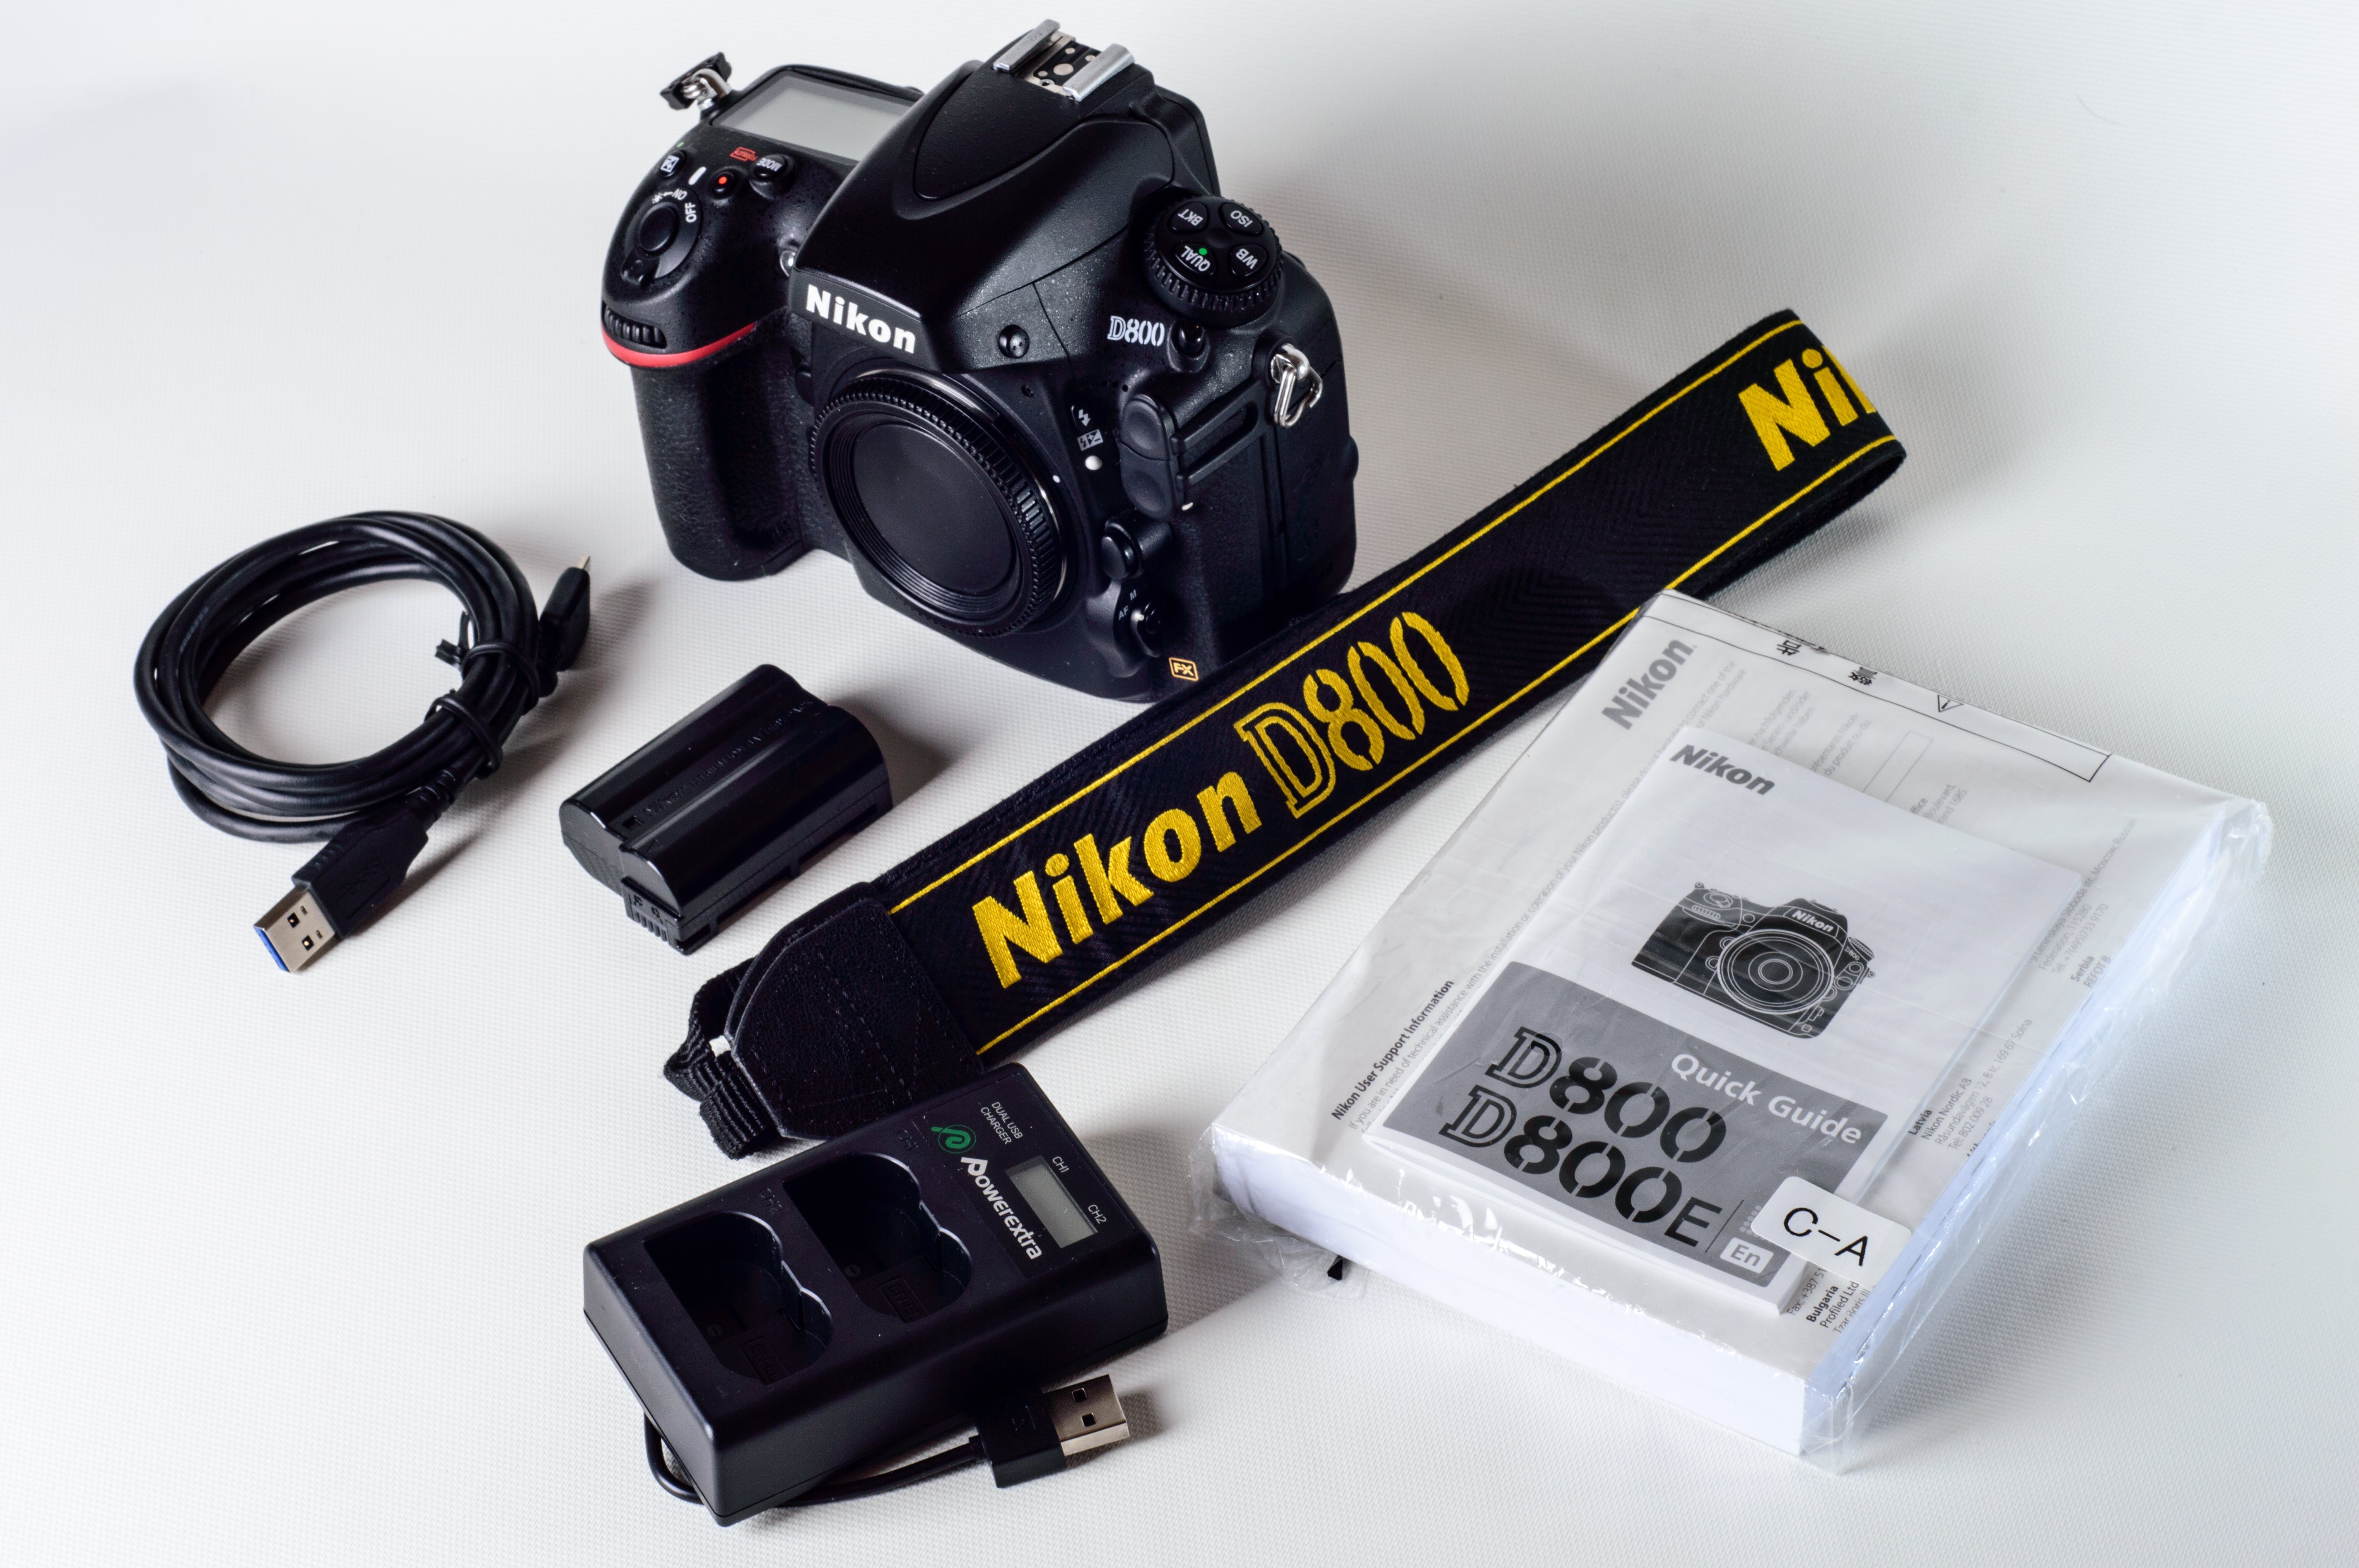 Nikon D800 With Lanyard And Battery Charger